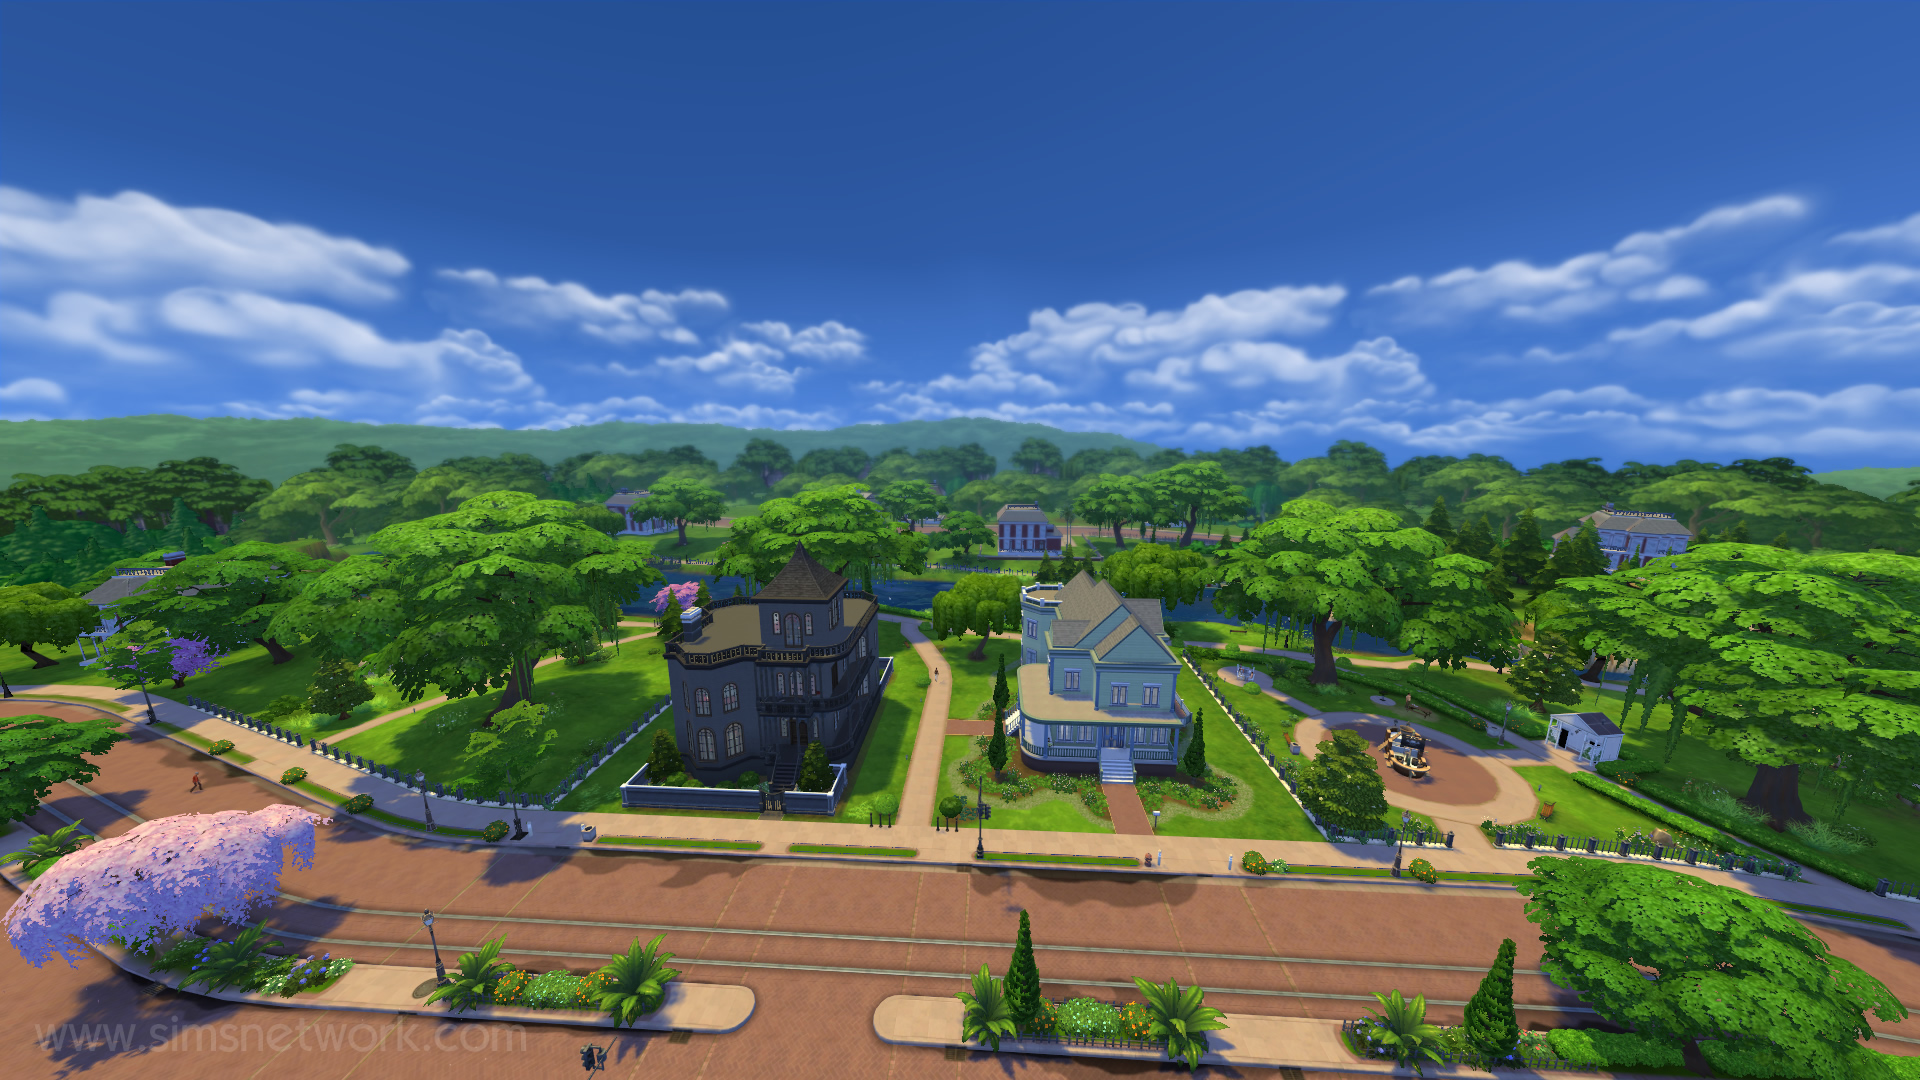 Willow creek snw for Willow creek mansion